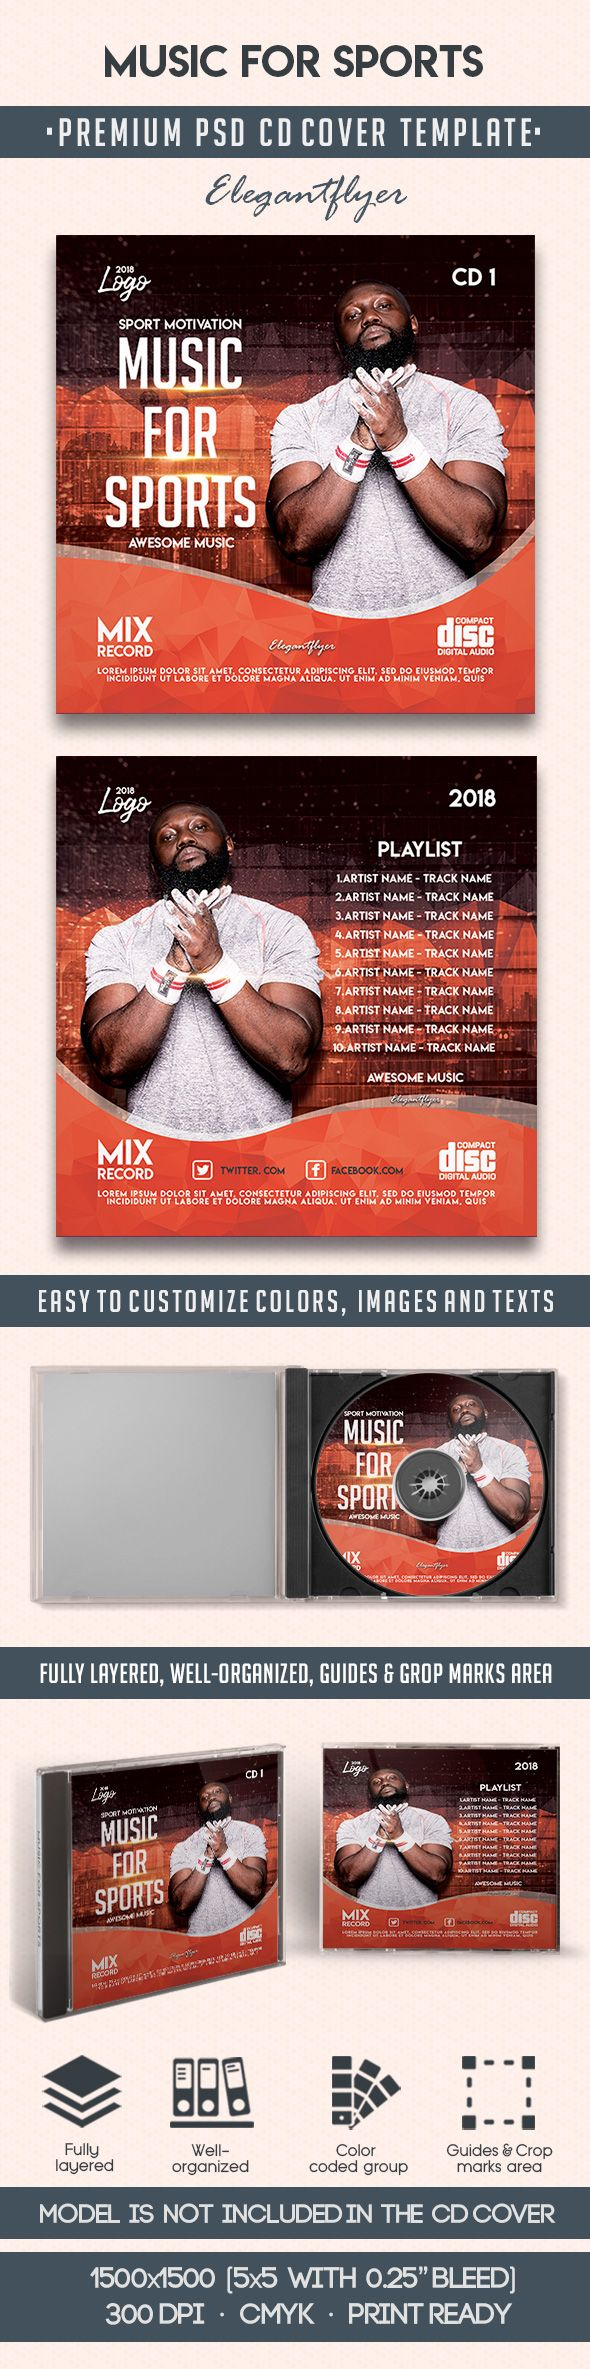 Music For Sports – Premium CD Cover PSD Template